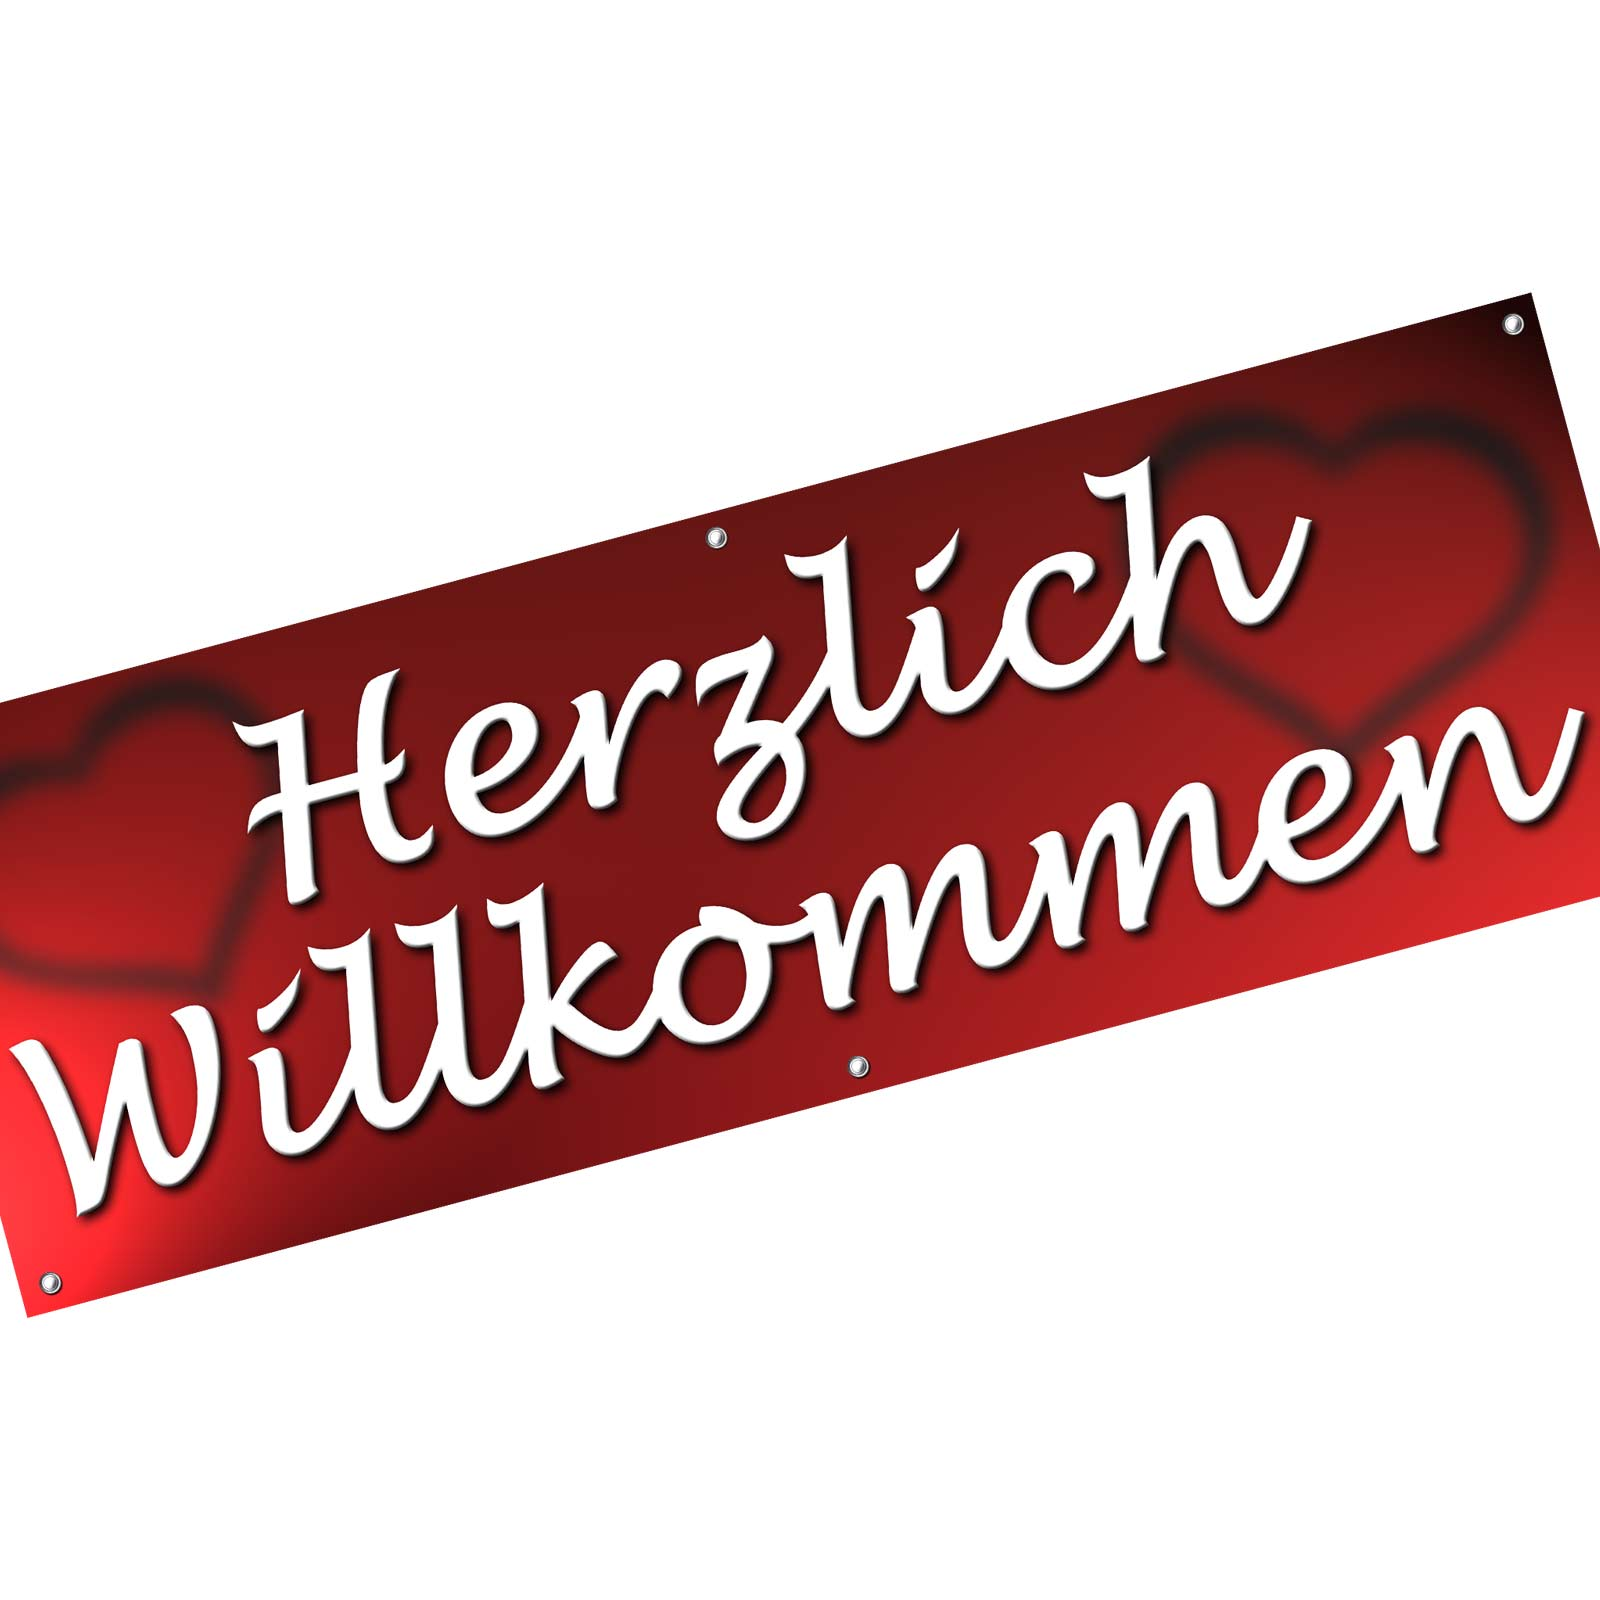 spannbanner banner werbebanner herzlich willkommen 2 m lang. Black Bedroom Furniture Sets. Home Design Ideas